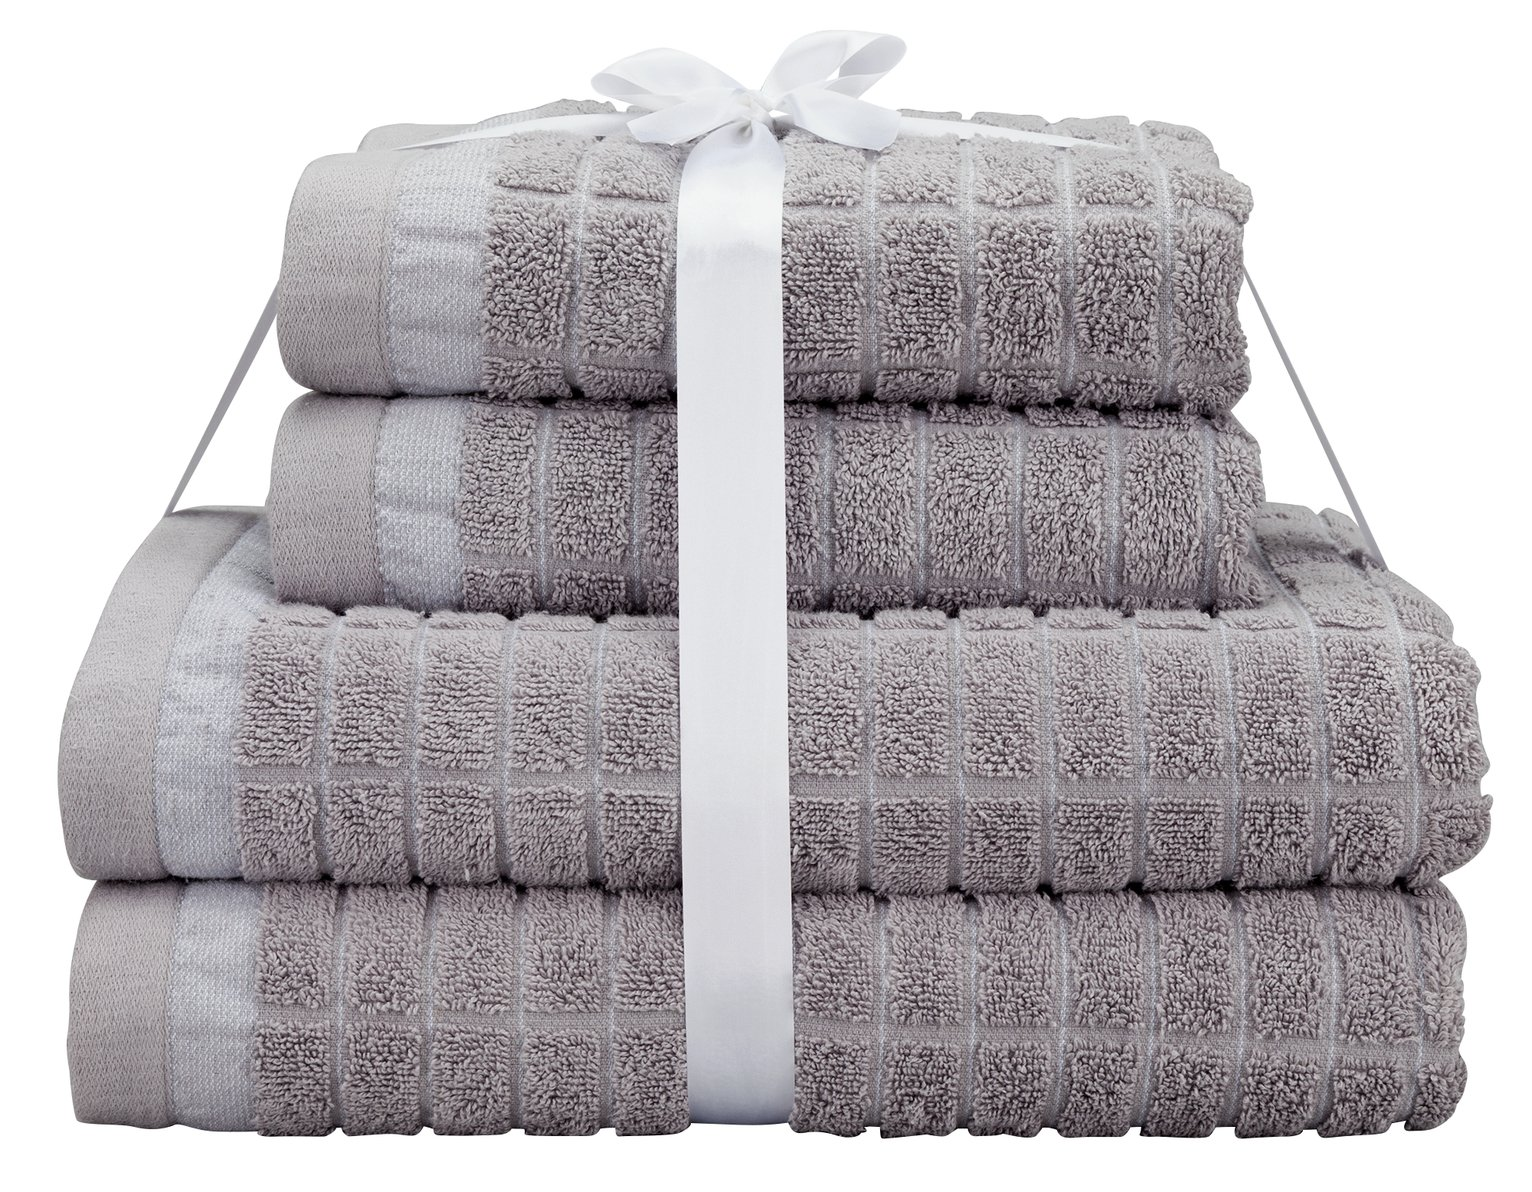 Argos Home 4 Piece Gridded Towel Bale - Glacier Grey